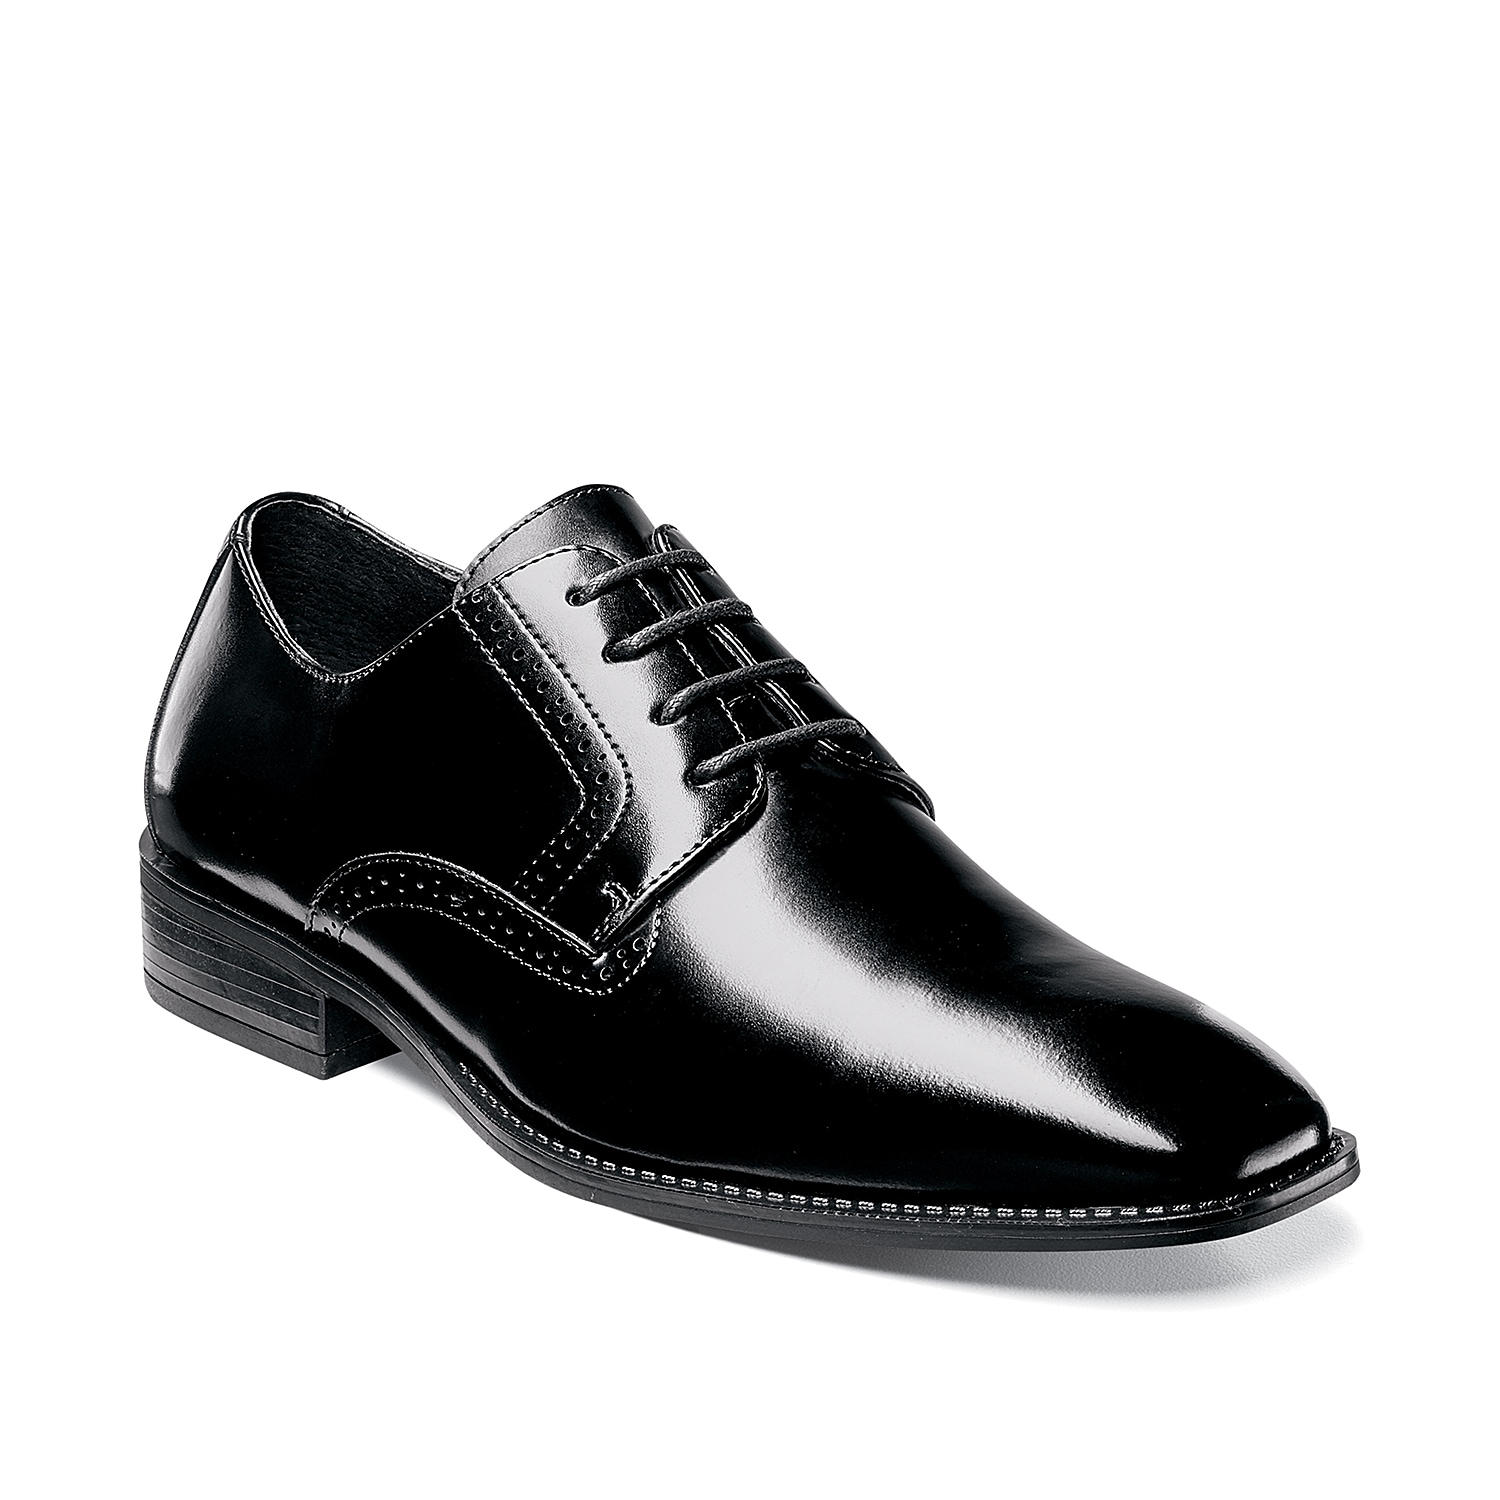 Add modern style to your shoe collection with the Ardell oxford from Stacy Adams. This lace-up pair features smooth leather and perforated brogue accents for a handsome finishing touch!